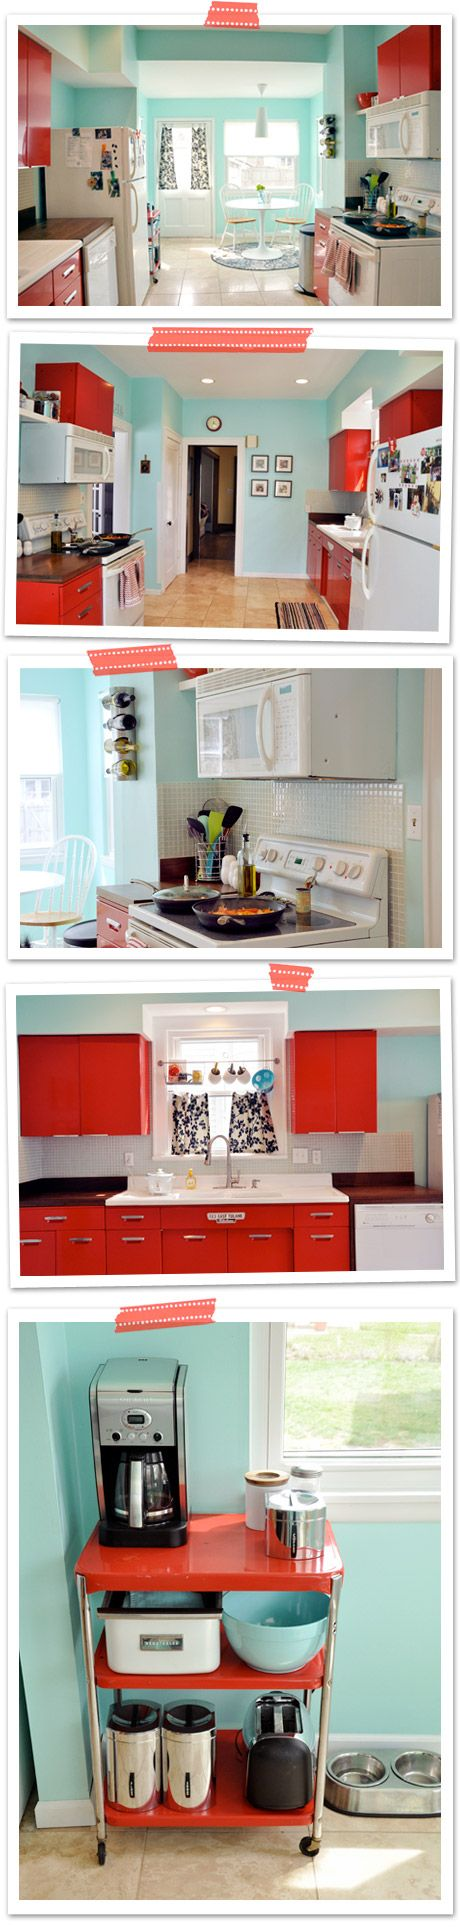 I love this color scheme for a kitchen though, I would do a majority of slate gray with pops of turquoise and red-orange.